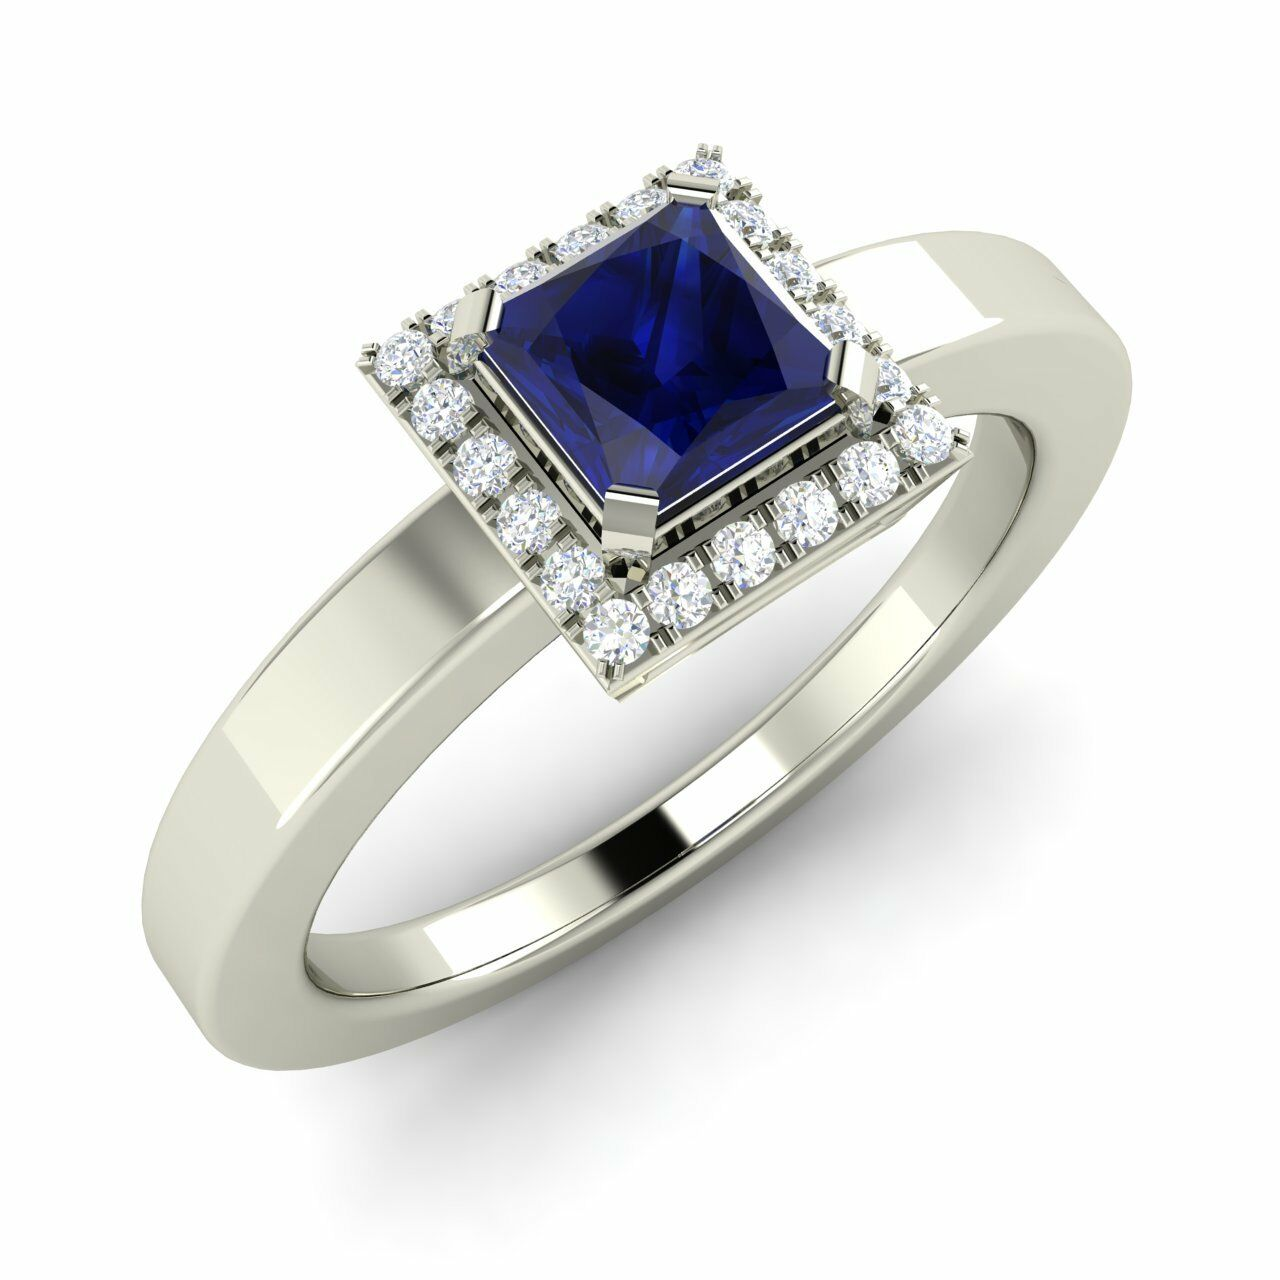 Certified 0.87 Ct Princess Cut Sapphire & Diamond 14K White gold Engagement Ring